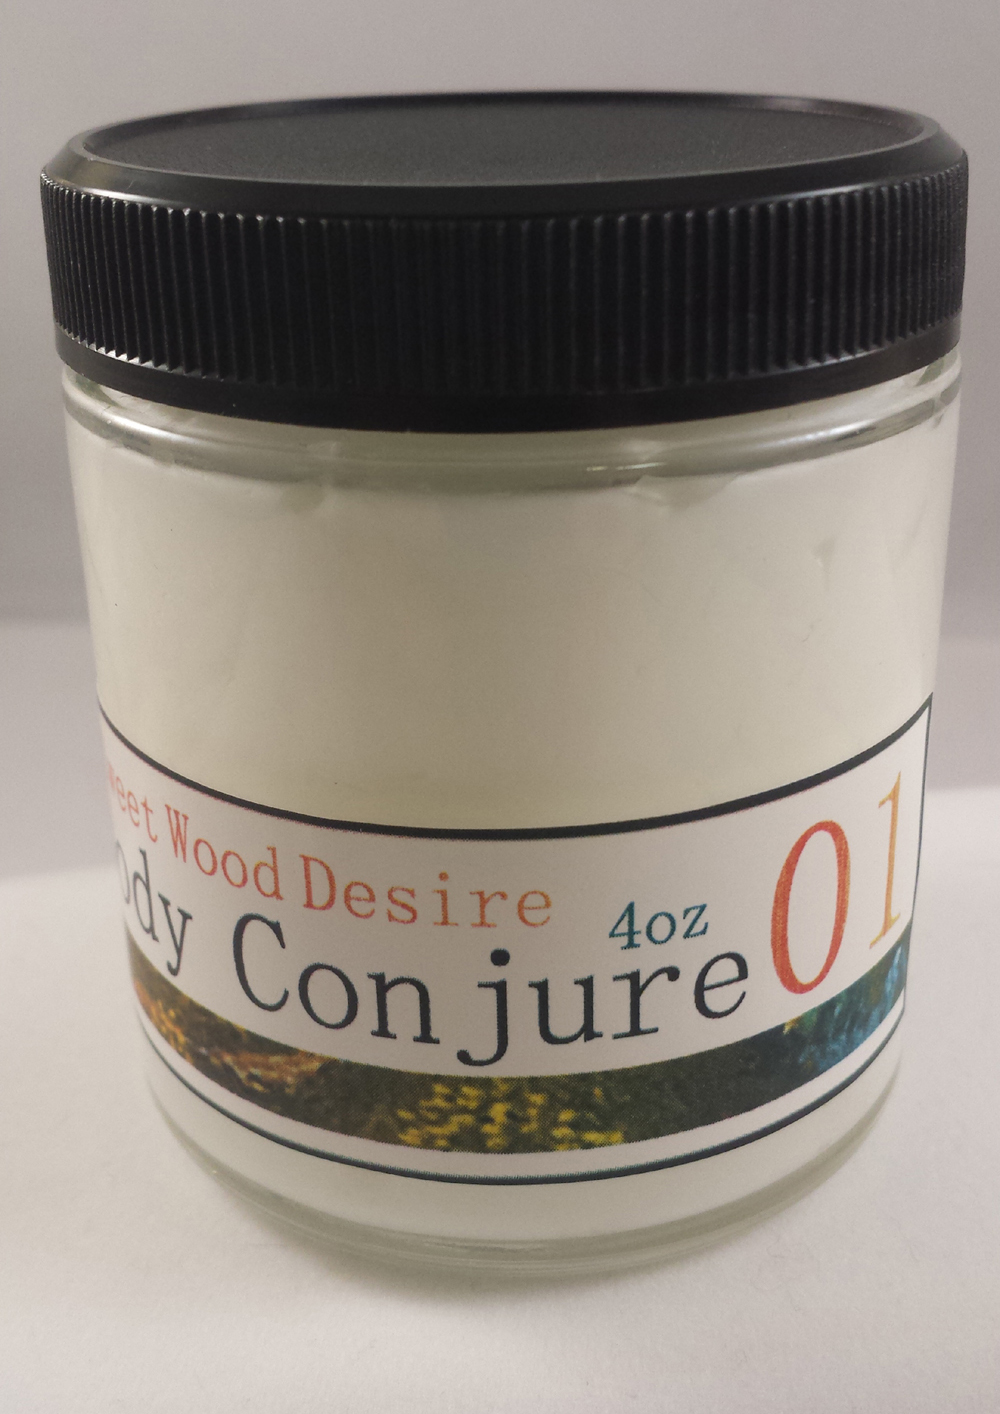 Body Conjure Perfume Beeswax Lotions